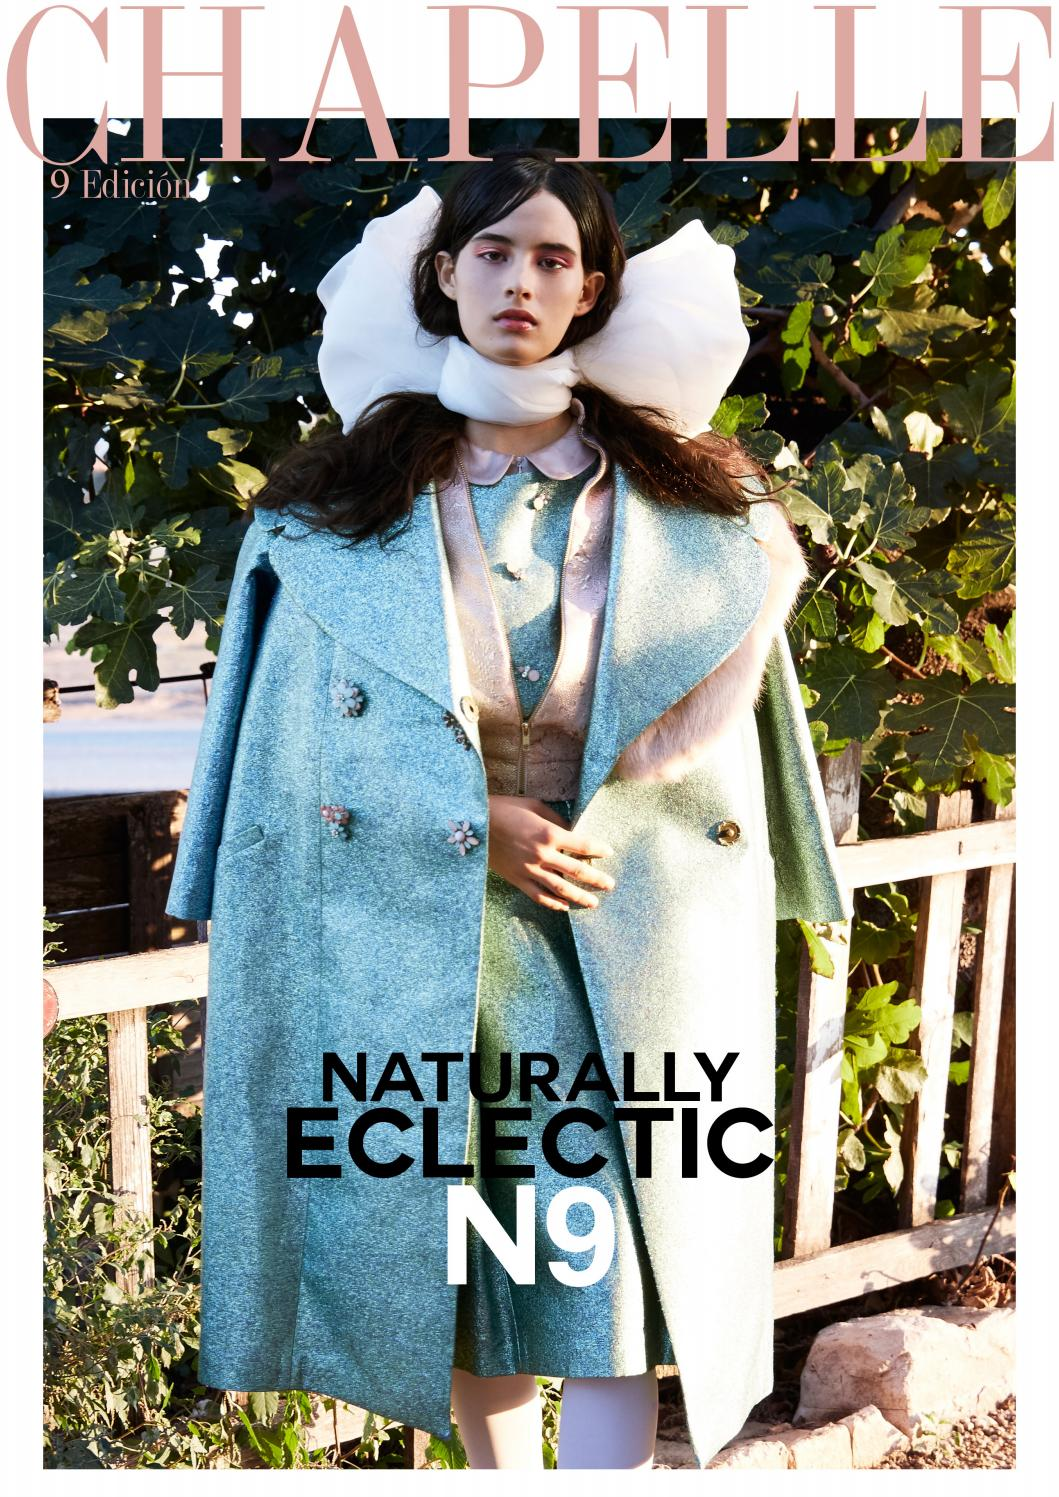 CHAPELLE Nº9- NATURALLY ECLECTIC by CHAPELLE MAGAZINE - issuu